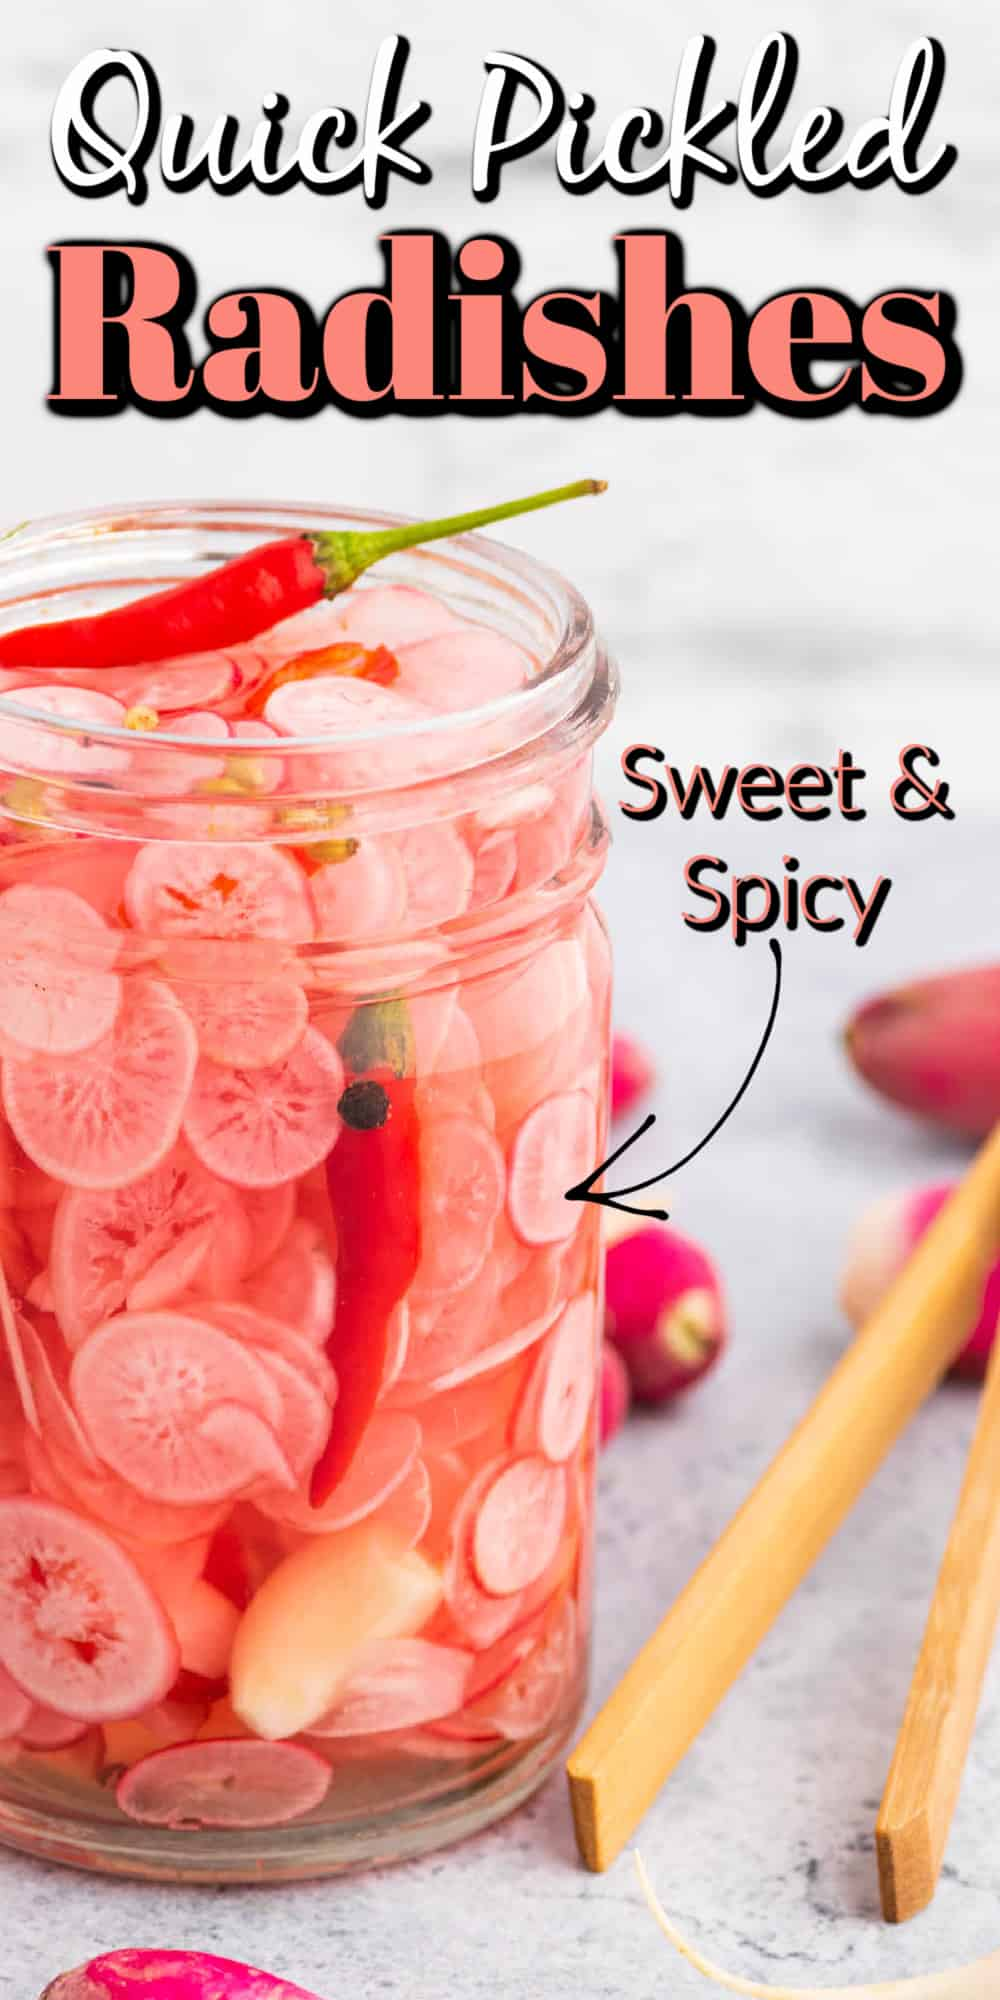 Quick Pickled Radishes (Sweet and Spicy) Pin